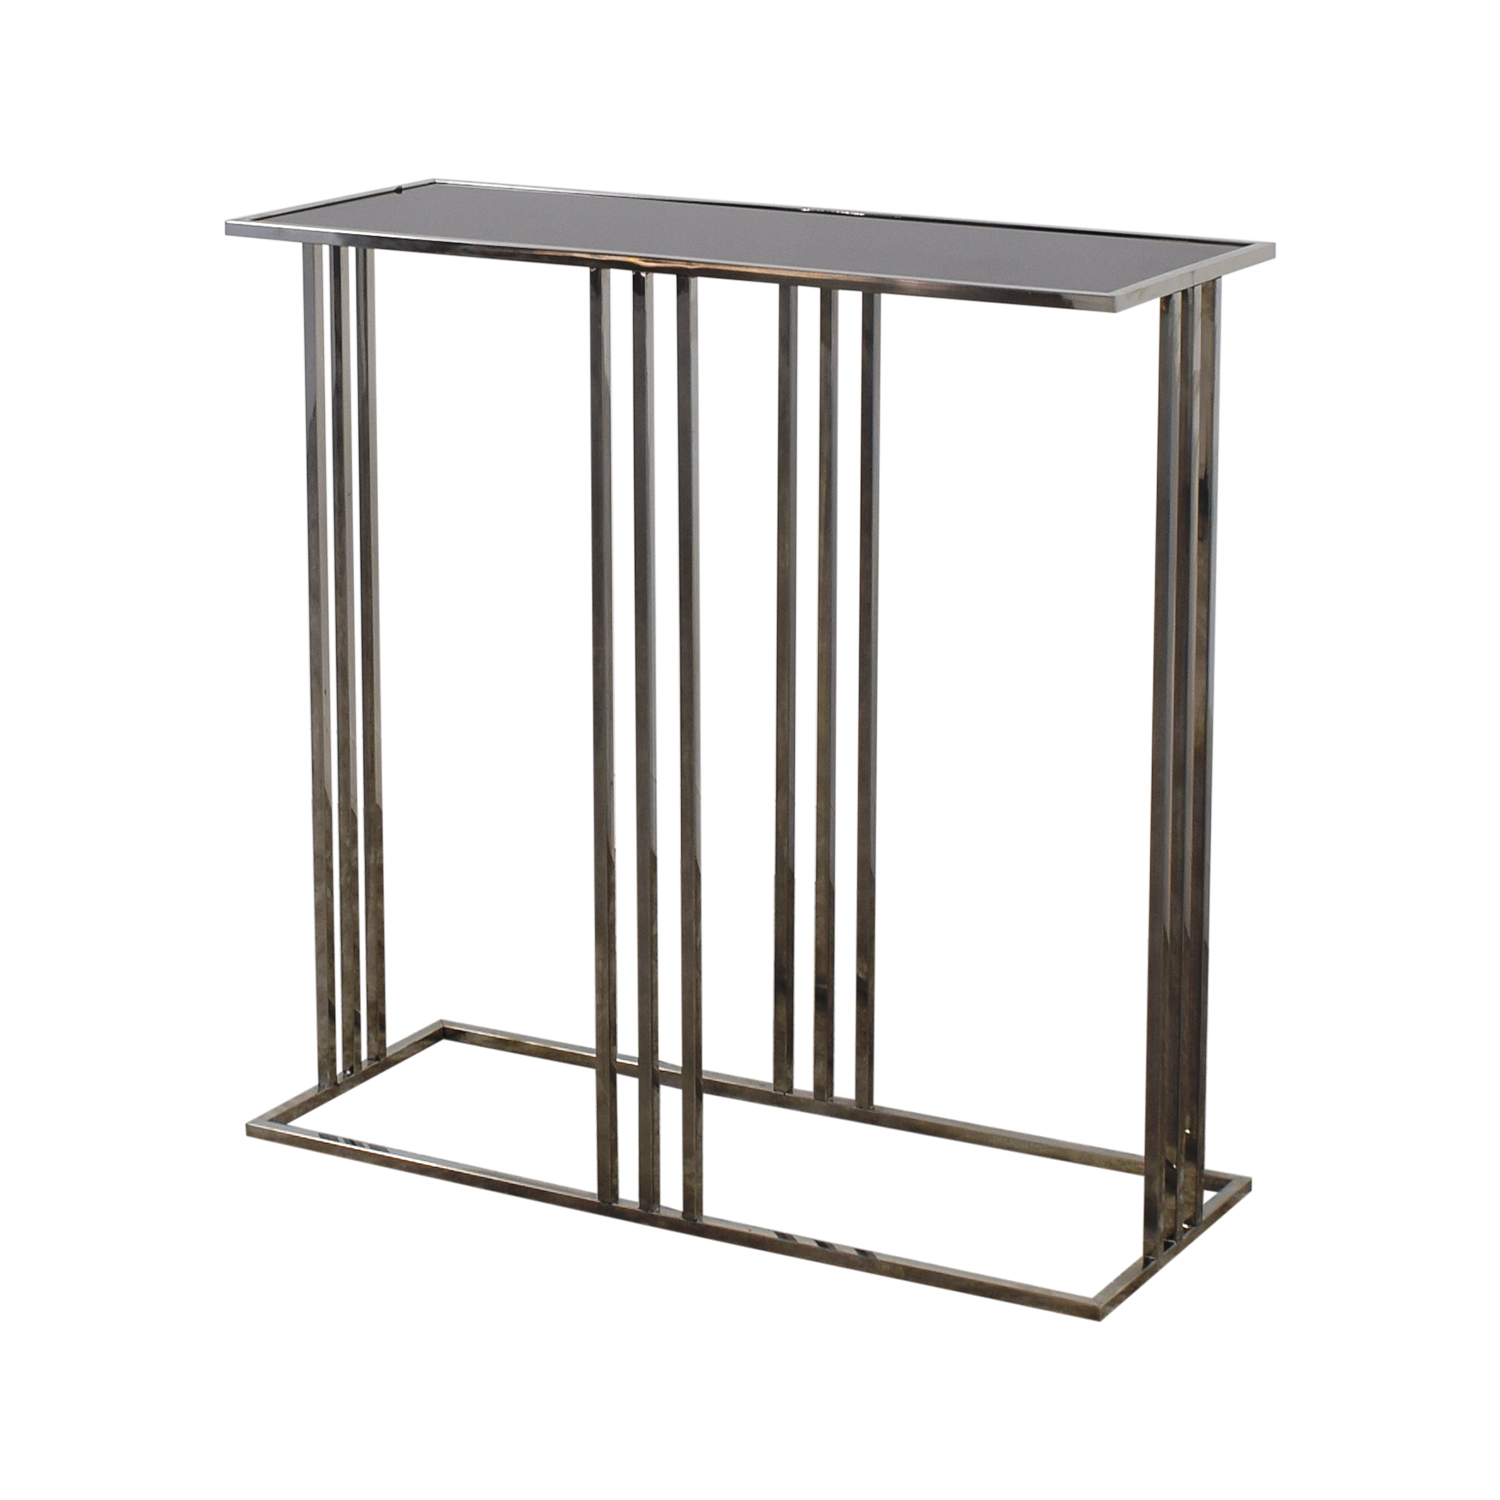 HomeGoods Black and Silver Entryway Table / Utility Tables